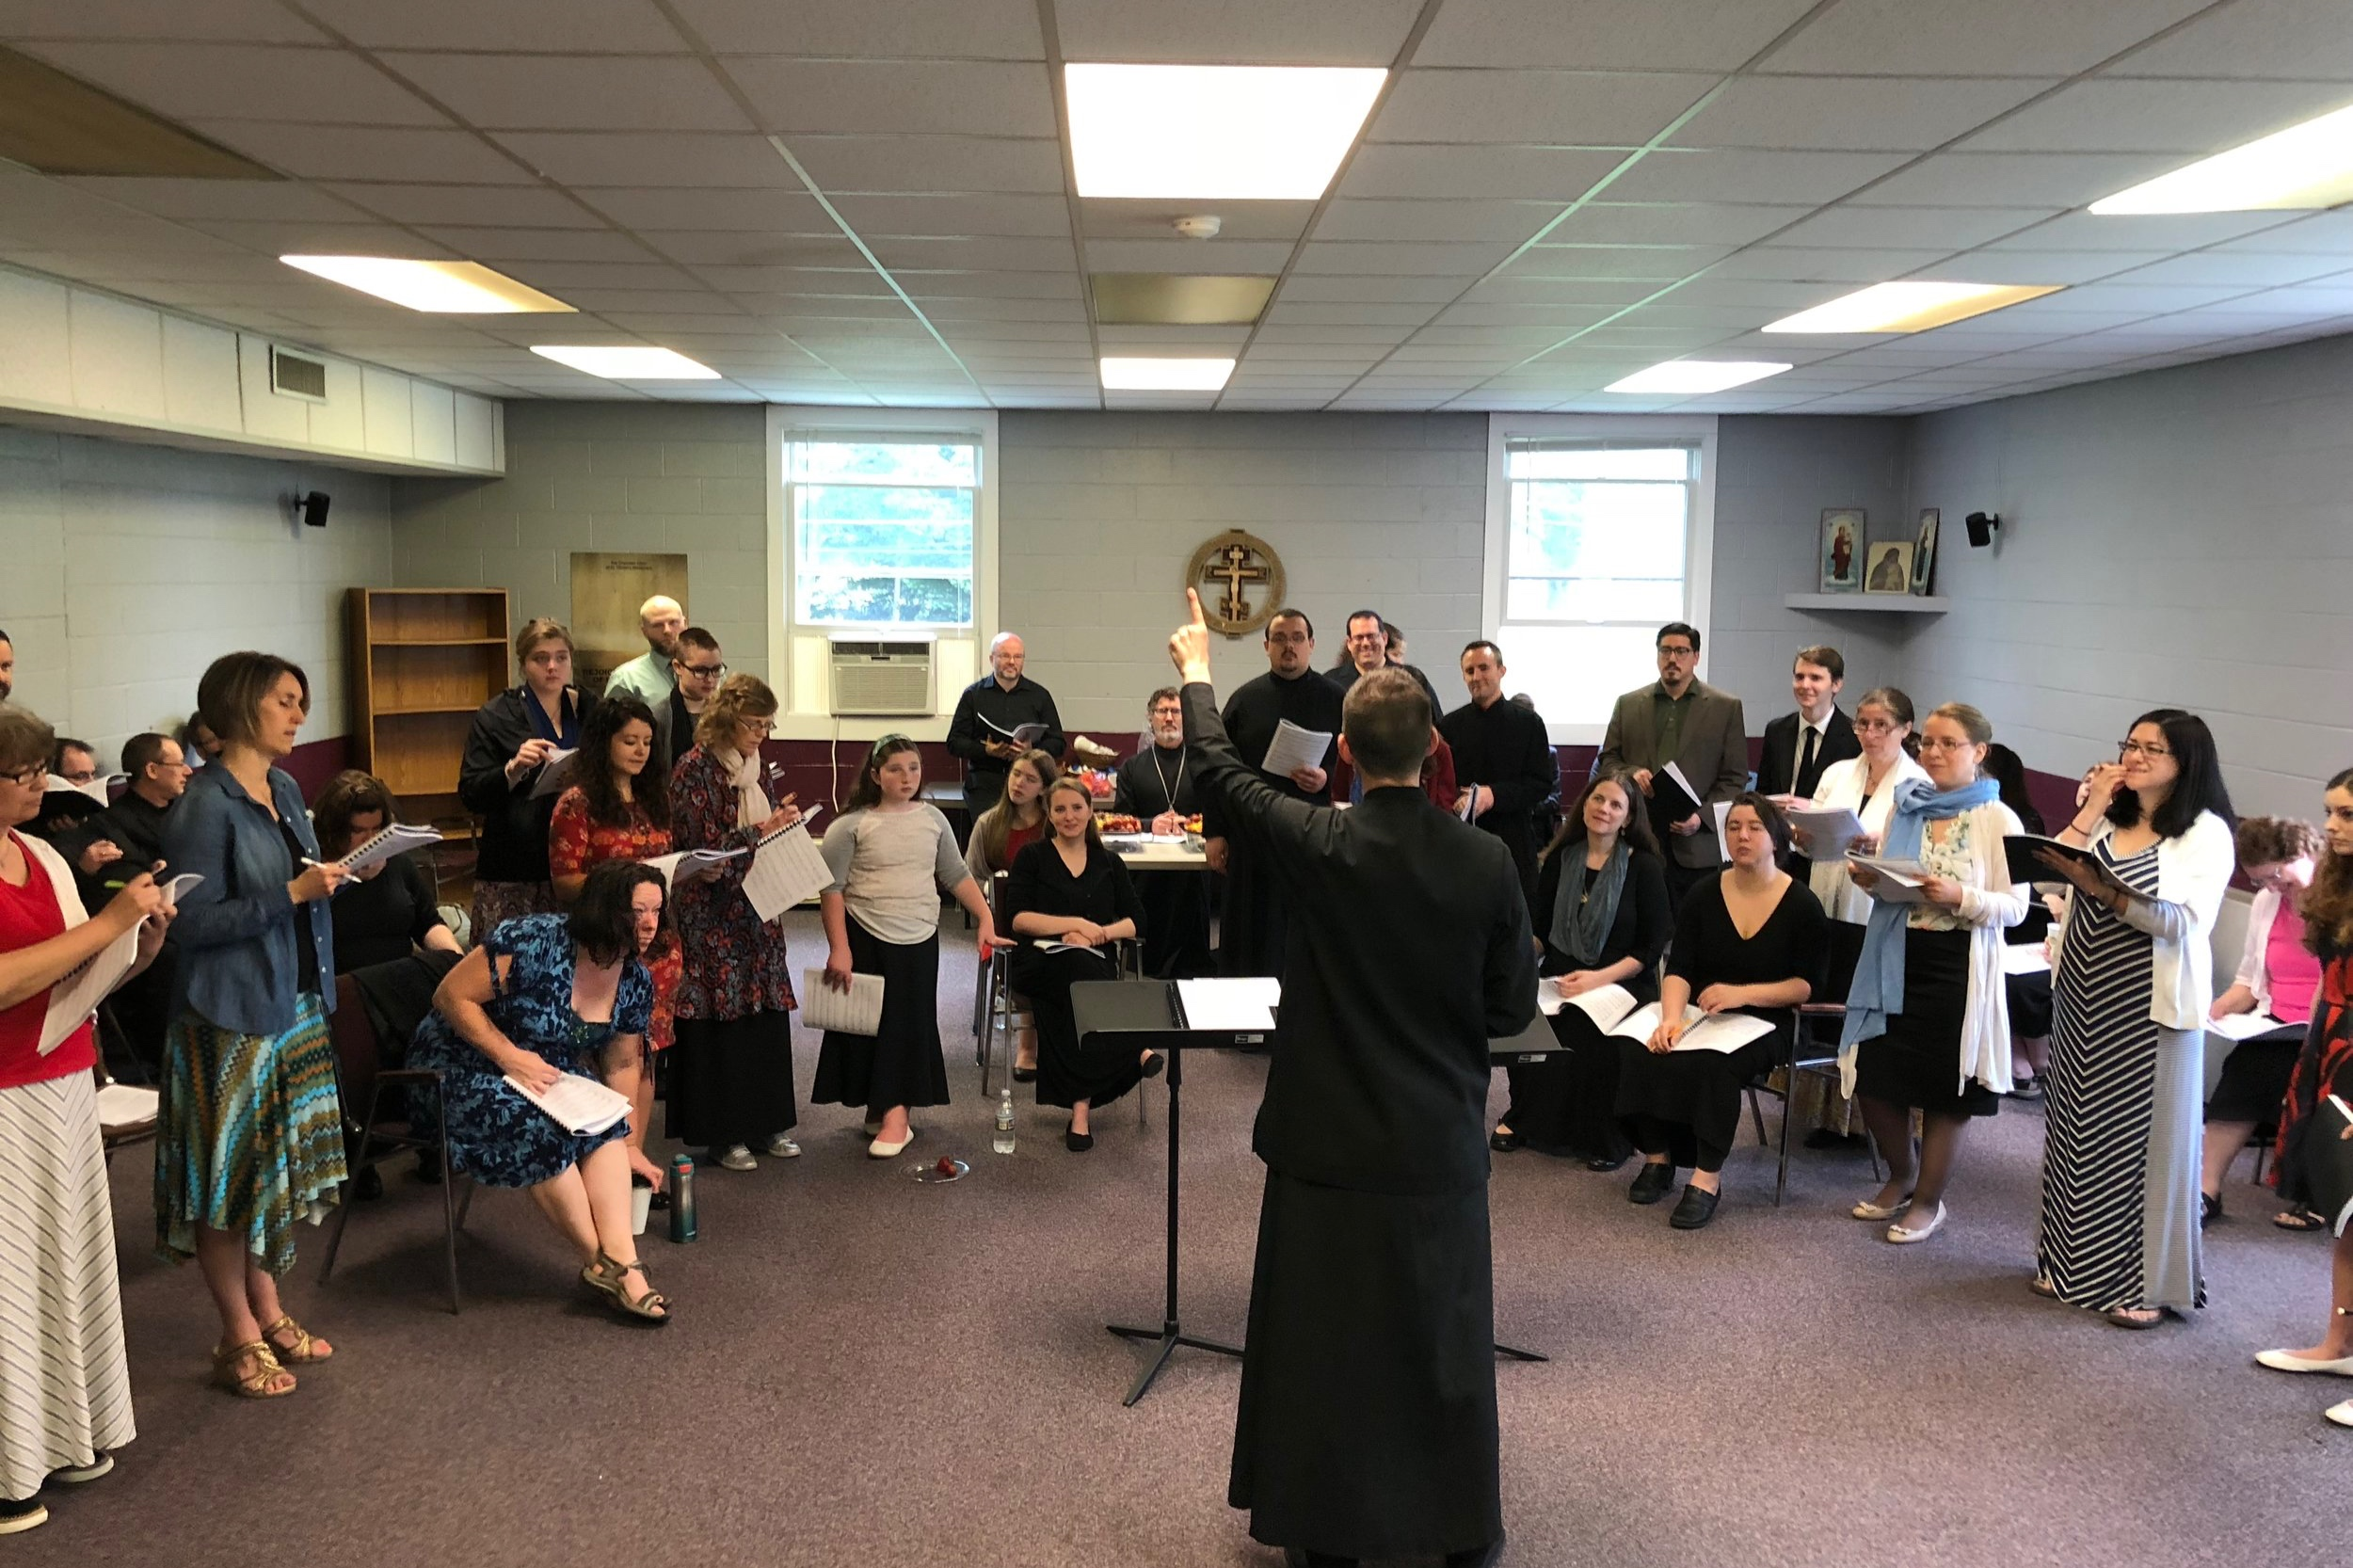 St. Tikhon's PILGRIMAGE CHOIR - Do you love church singing? Do you want to deepen your understanding? Do you want to sing with world class singers? Register today for the 2019 St. Tikhon's Pilgrimage Choir.